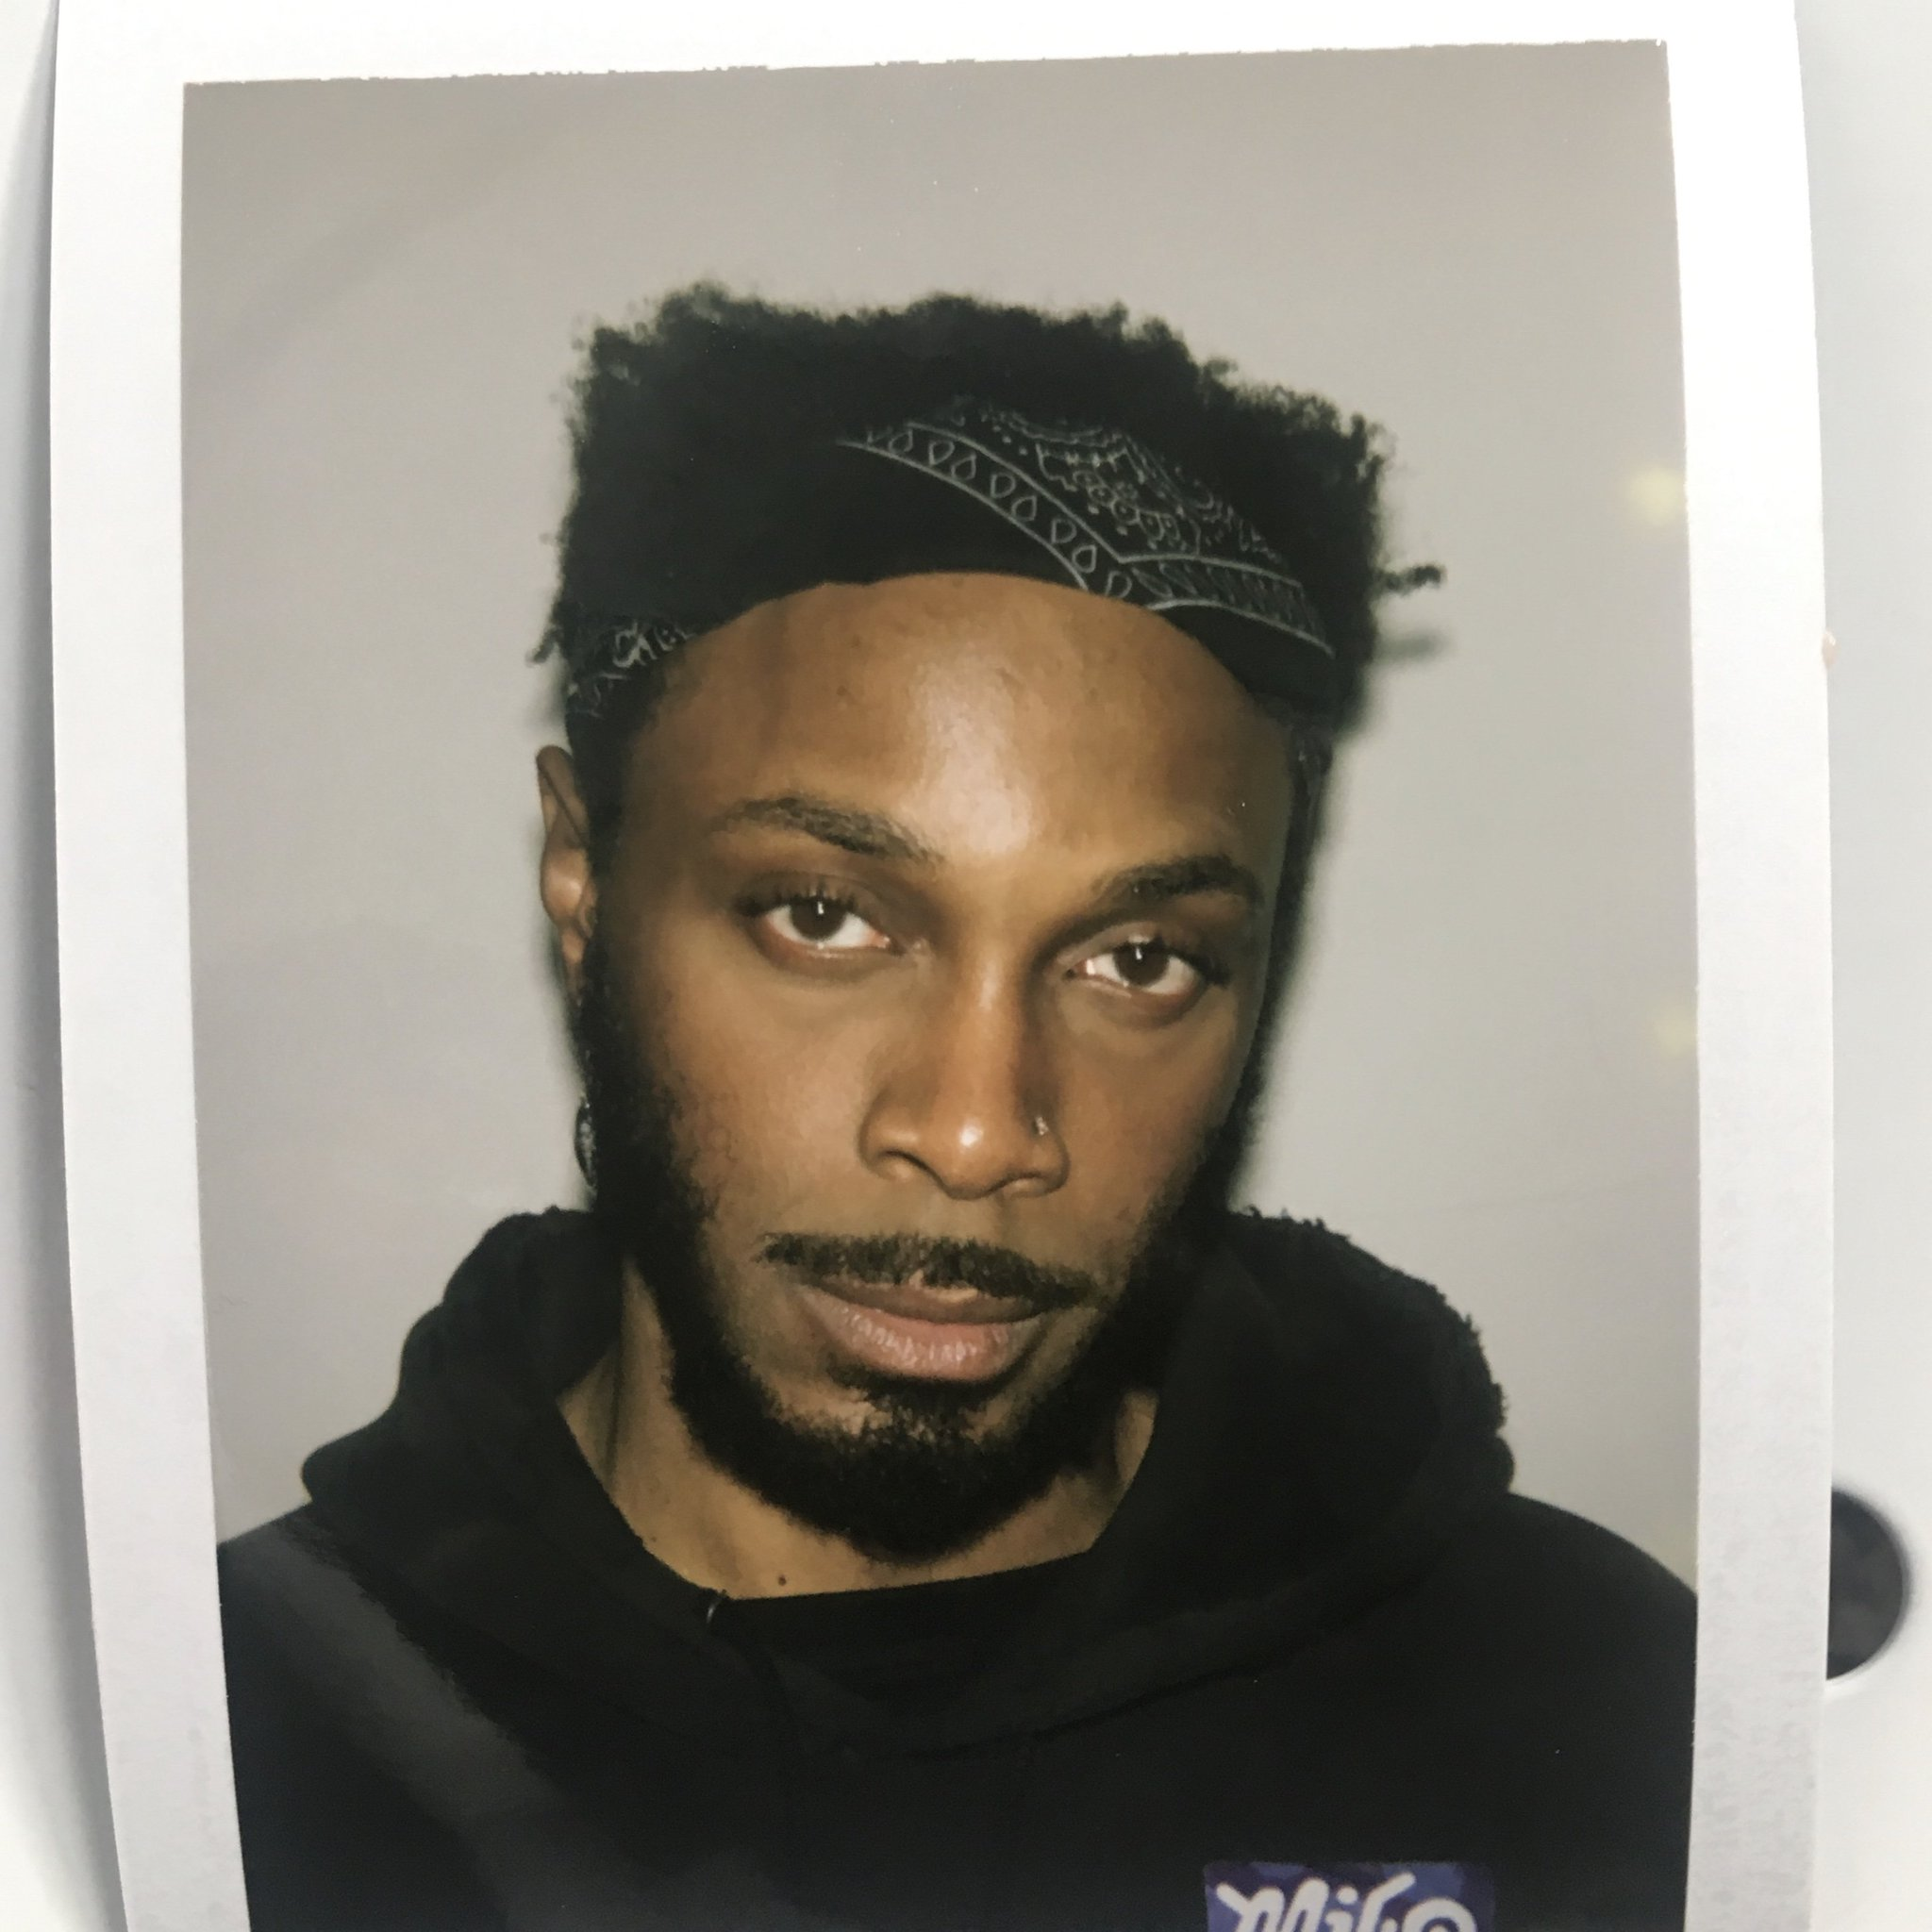 JPEGMAFIA is the out-of-pocket rap rebel the world needs right now. https://t.co/bPz4YYmmvn https://t.co/Mc9mcpXe64